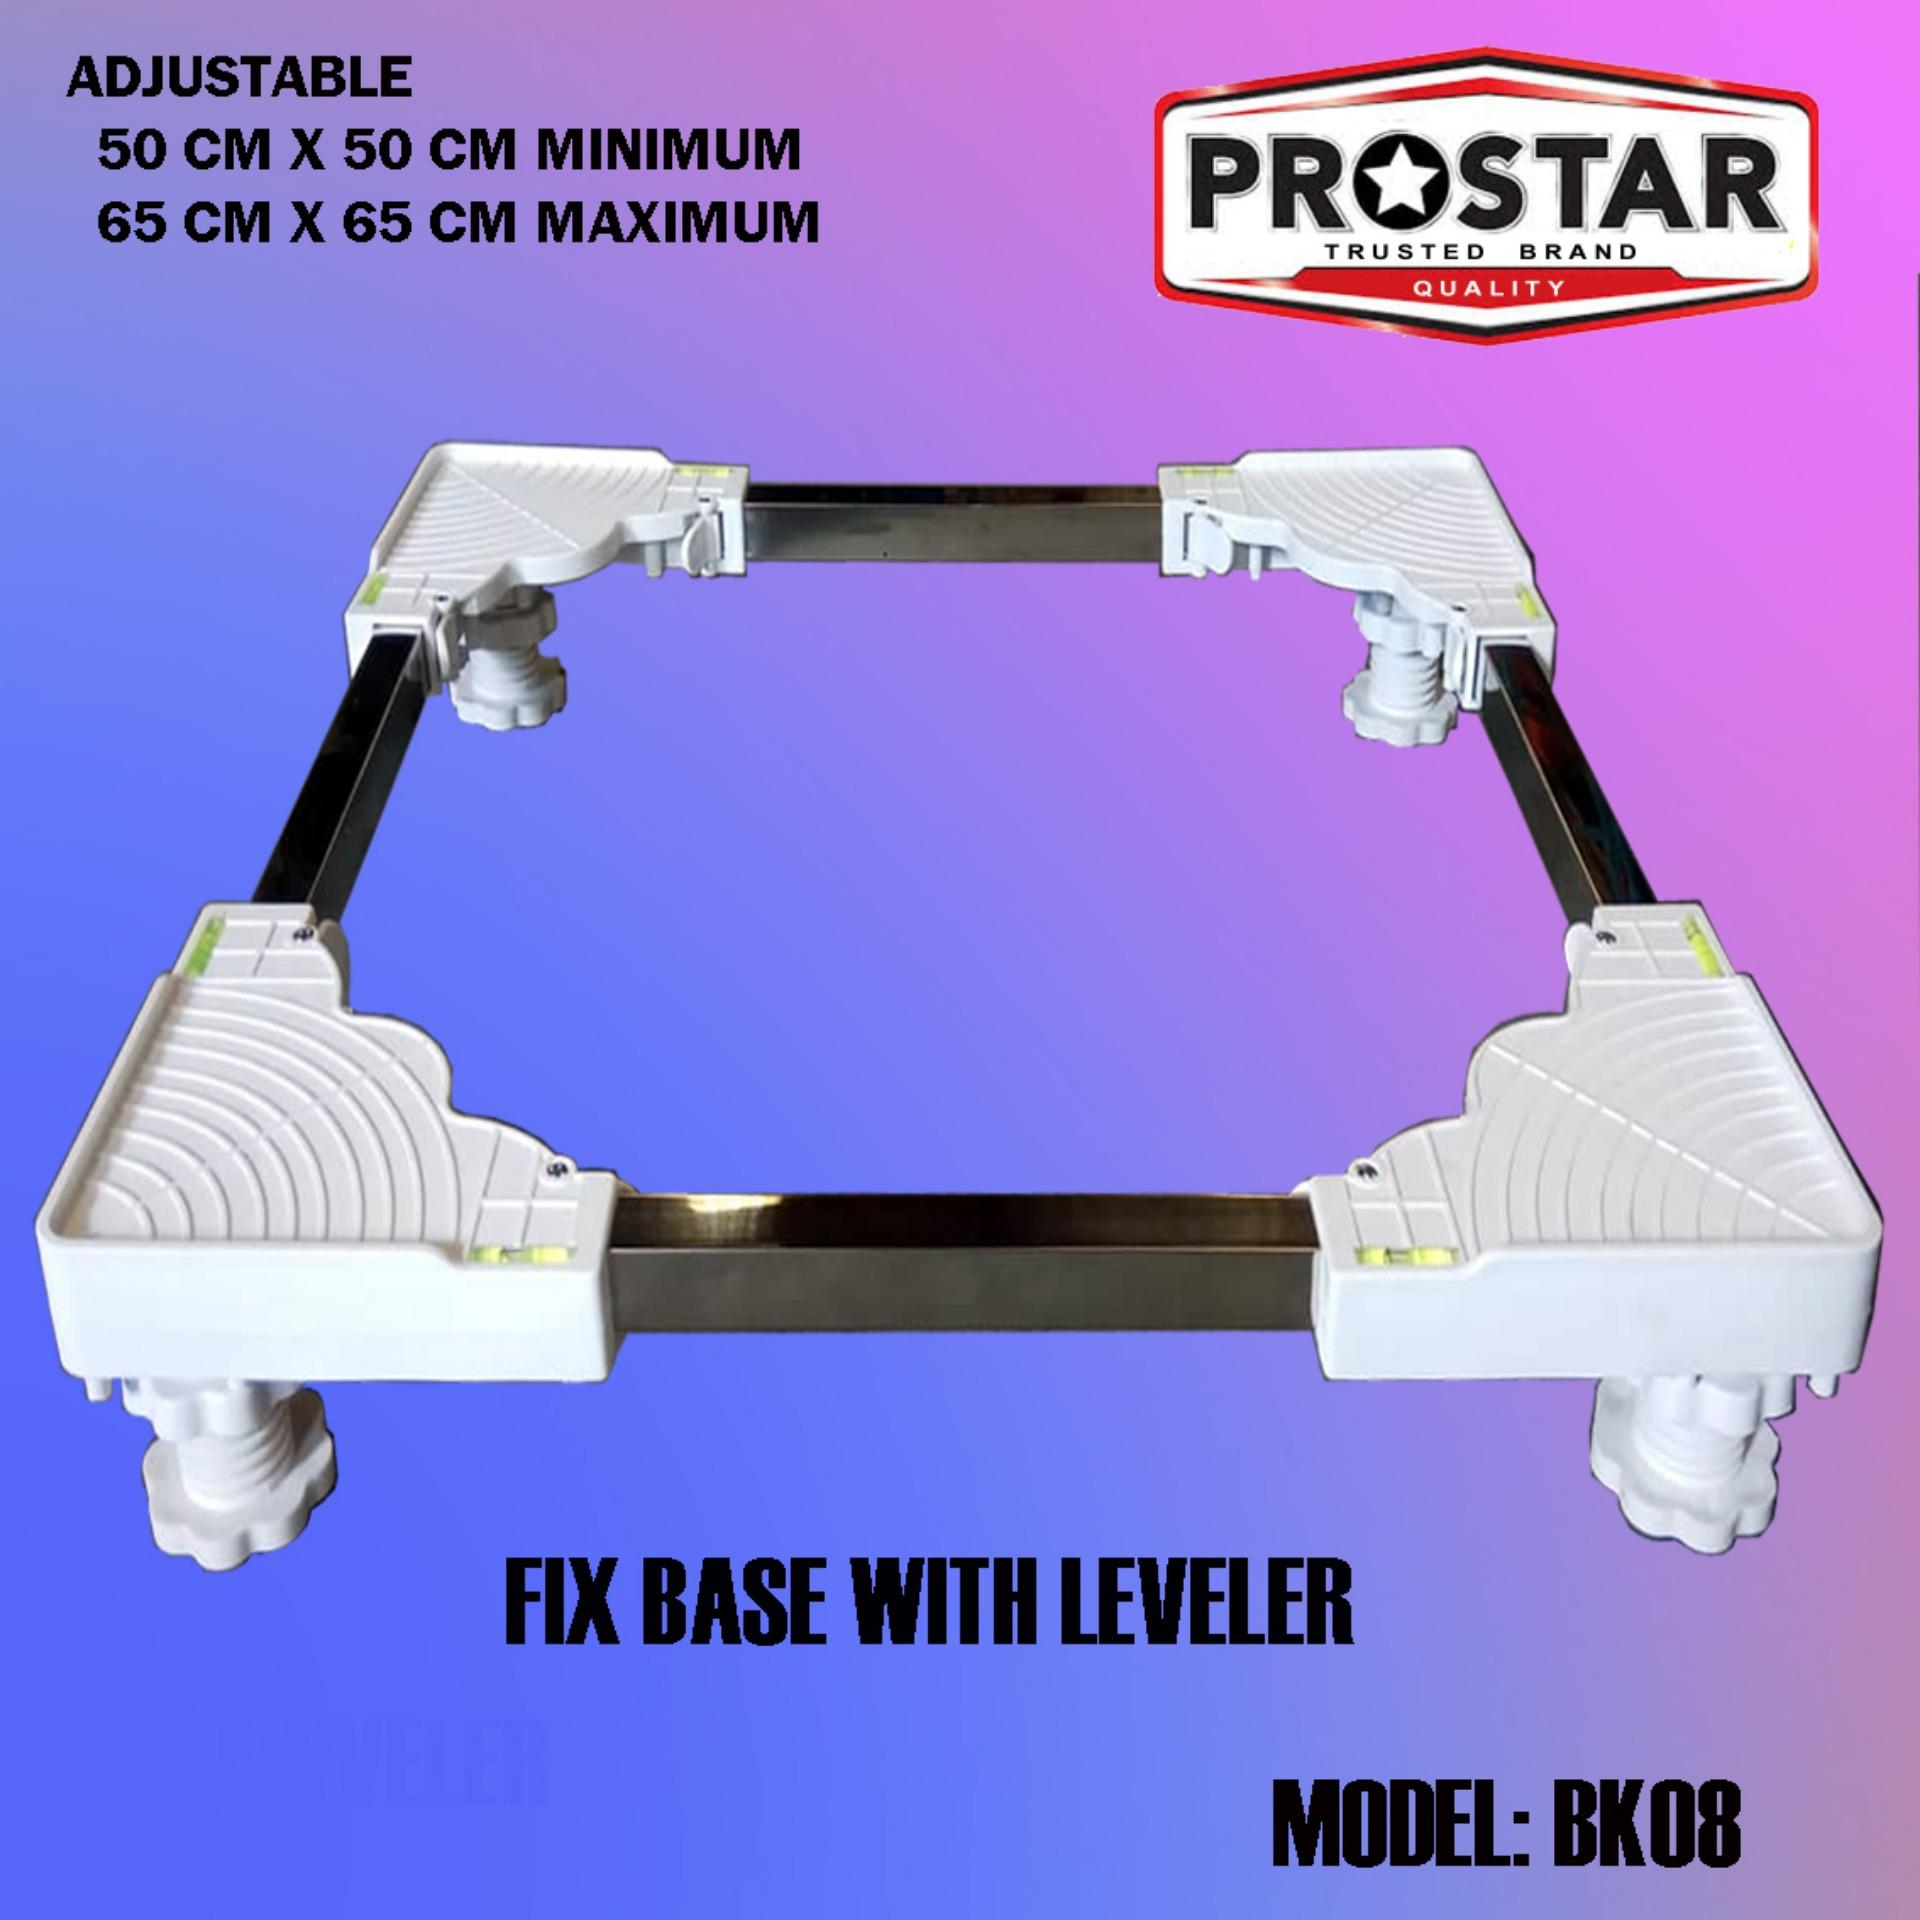 Washer Dryer Accessories For Sale Parts Prices Panasonic Washing Machine Wiring Diagram Prostar Model Bk08 Fix Type No Wheels More Vibration Level